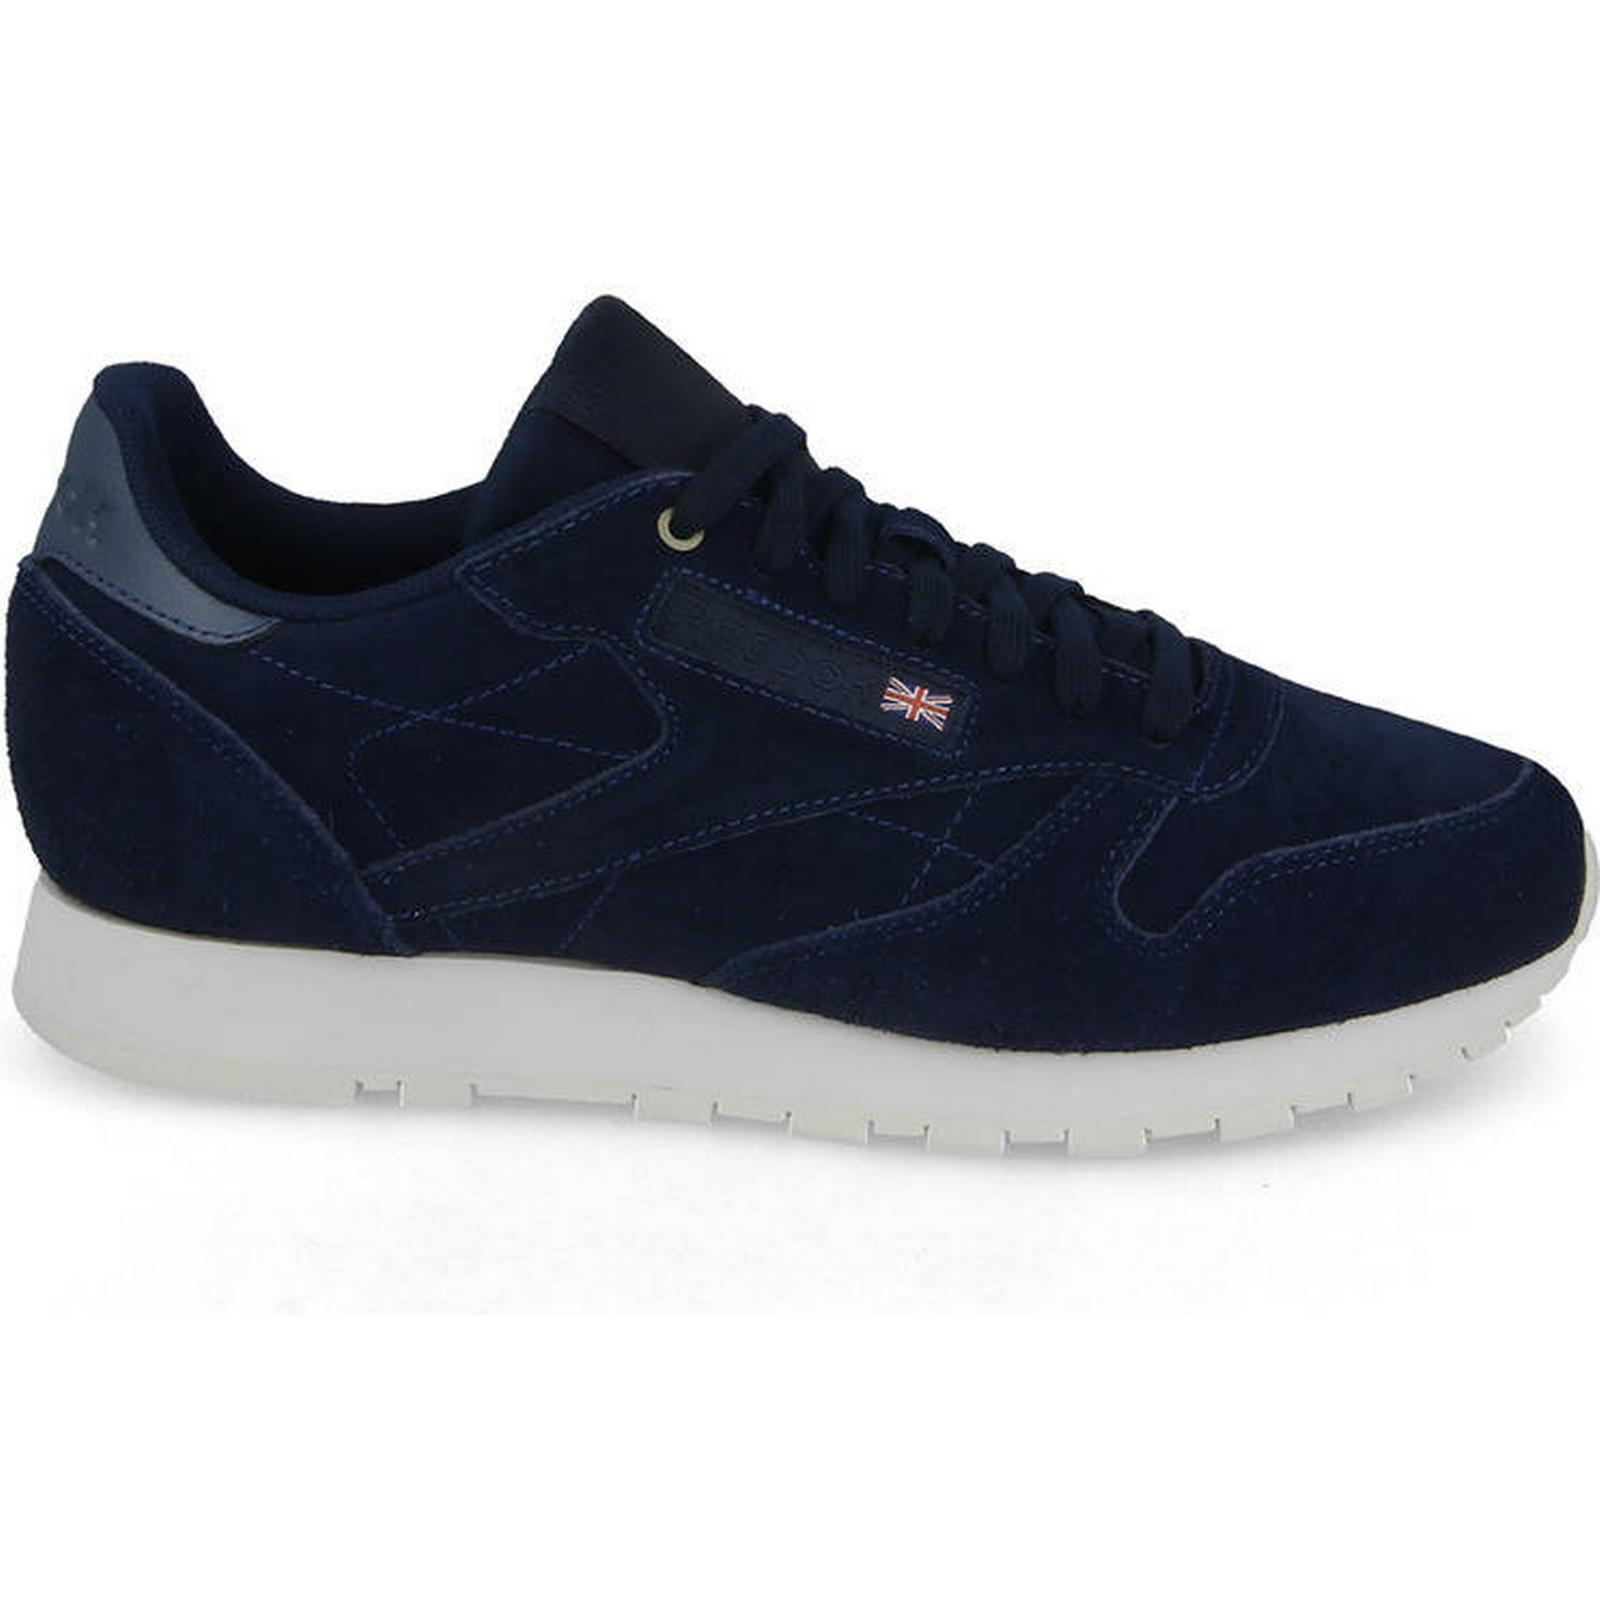 Reebok Classic Men's Leather Shoes sneakers Reebok Classic Leather Men's x Montana Cans Color System CM9609 Navy Size 42,5 2cd557